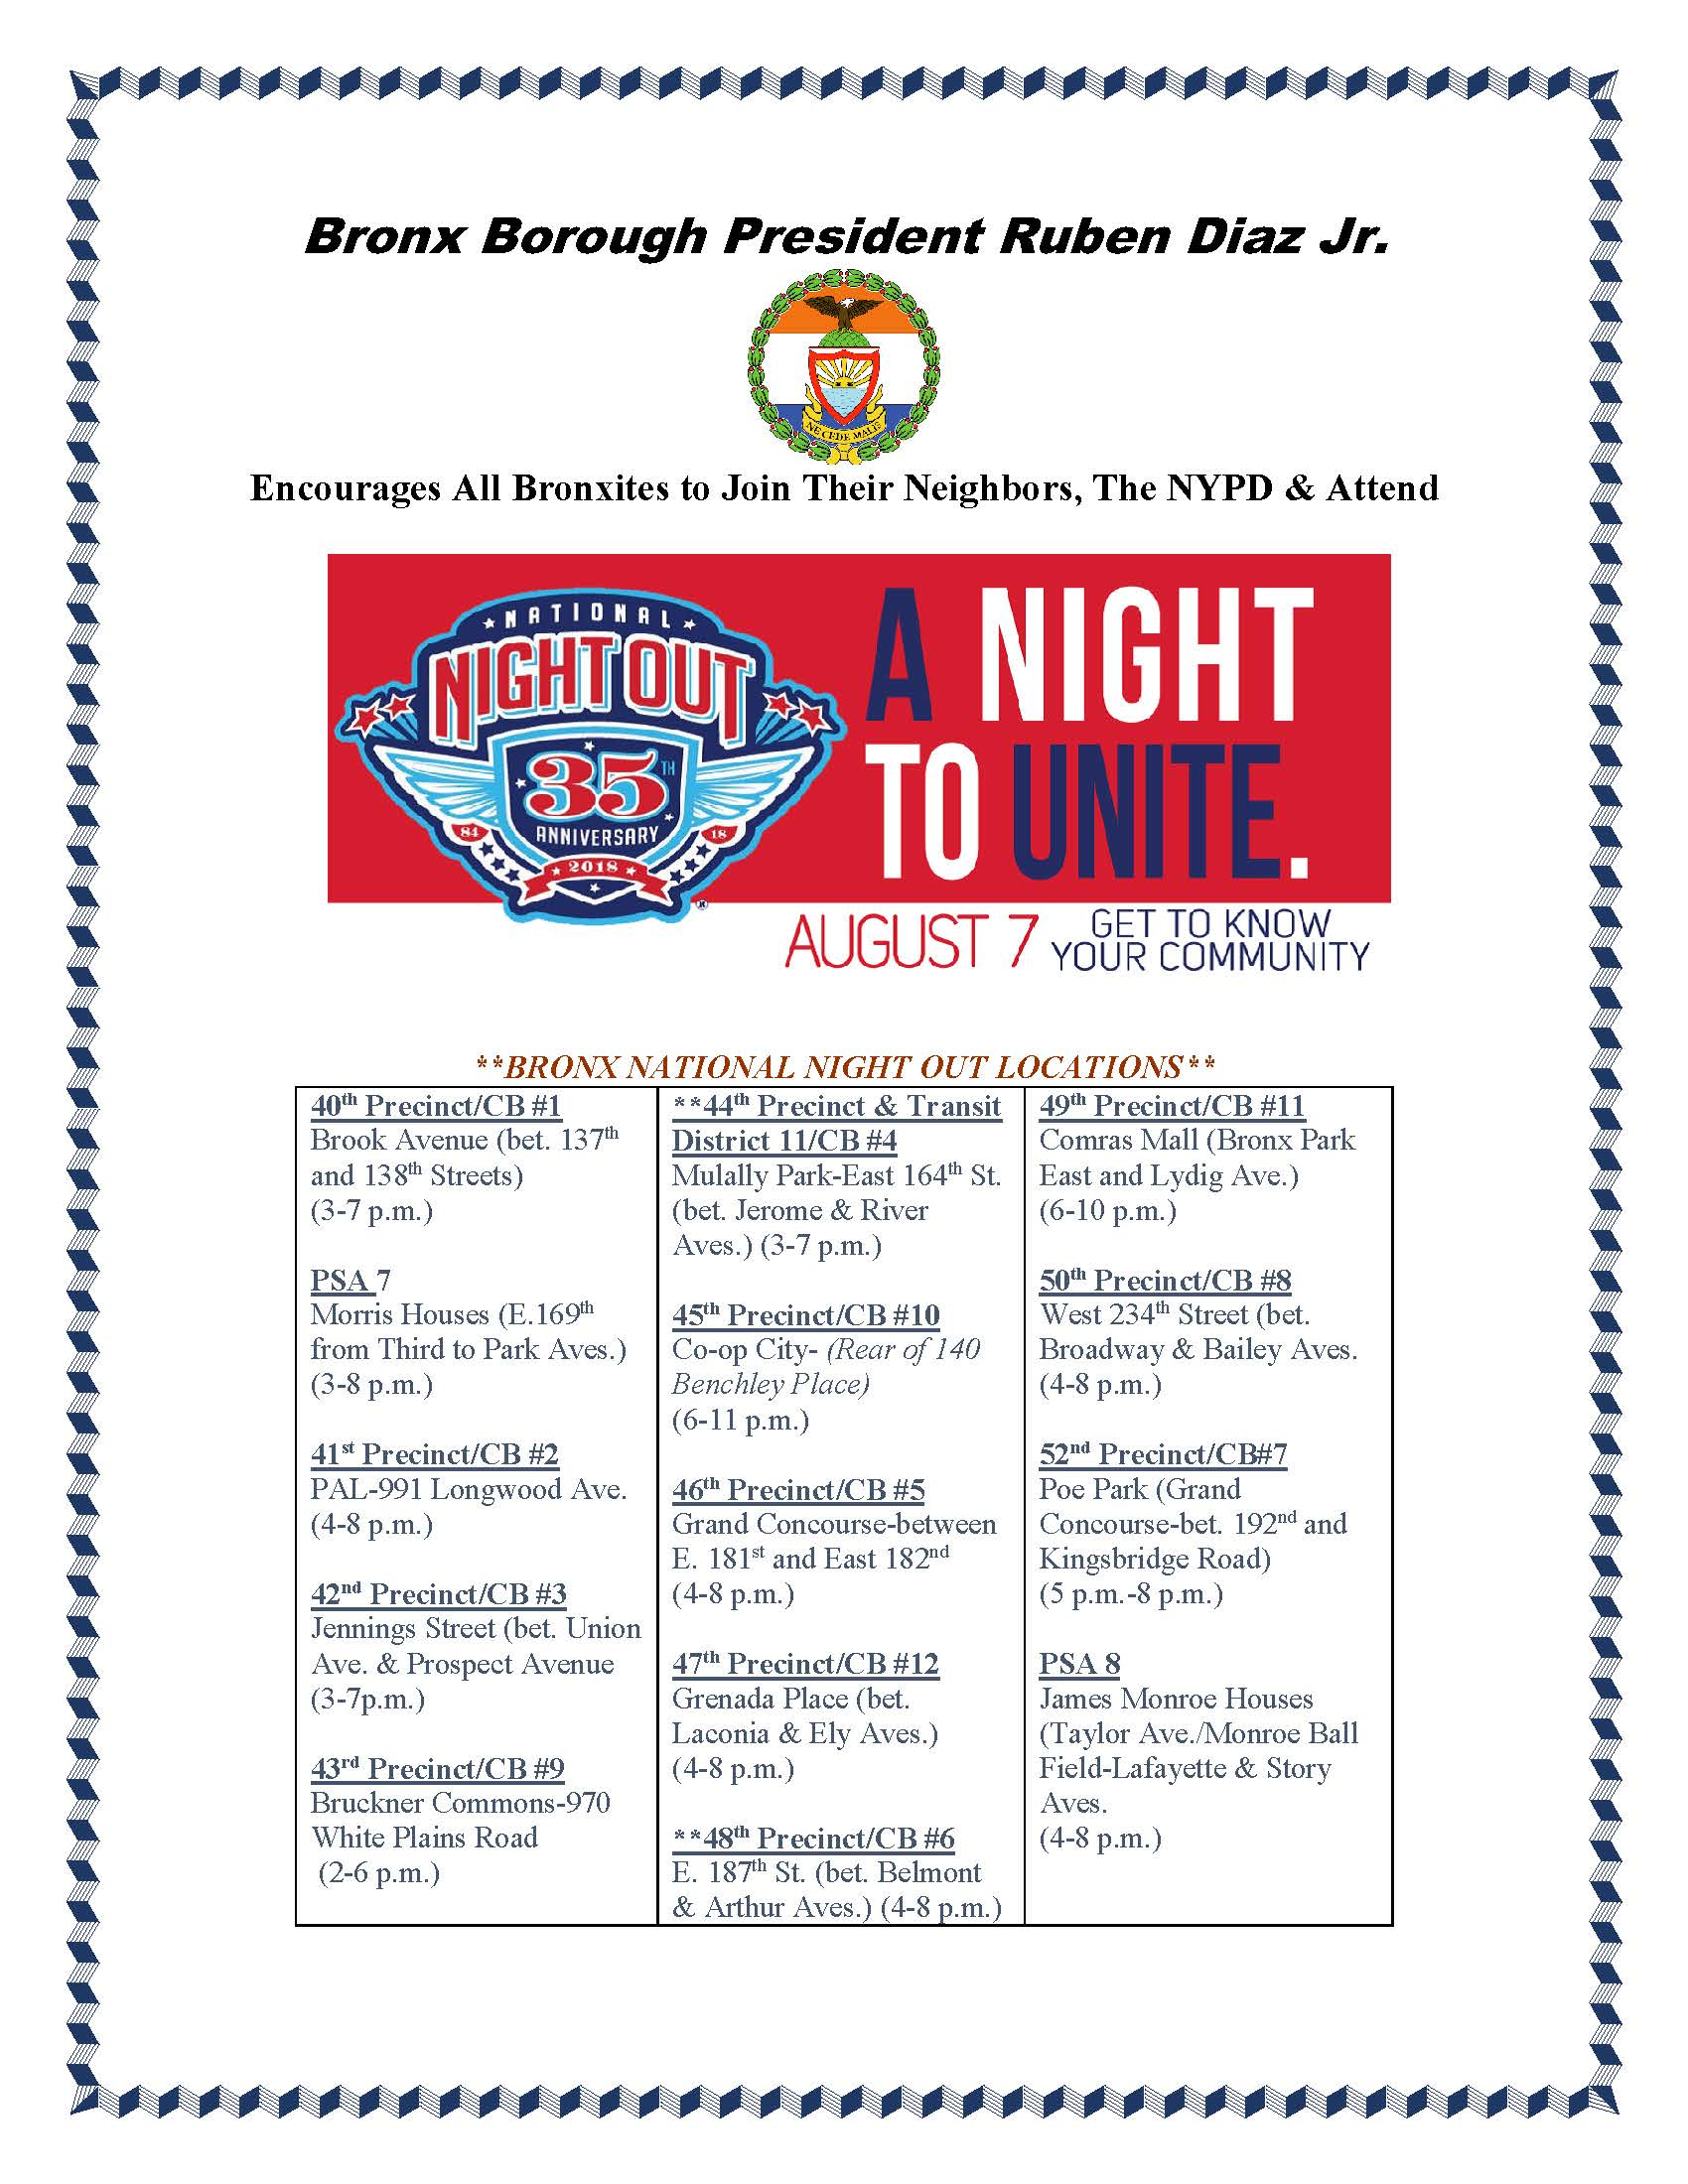 Bronx National Night Out locations August 7th